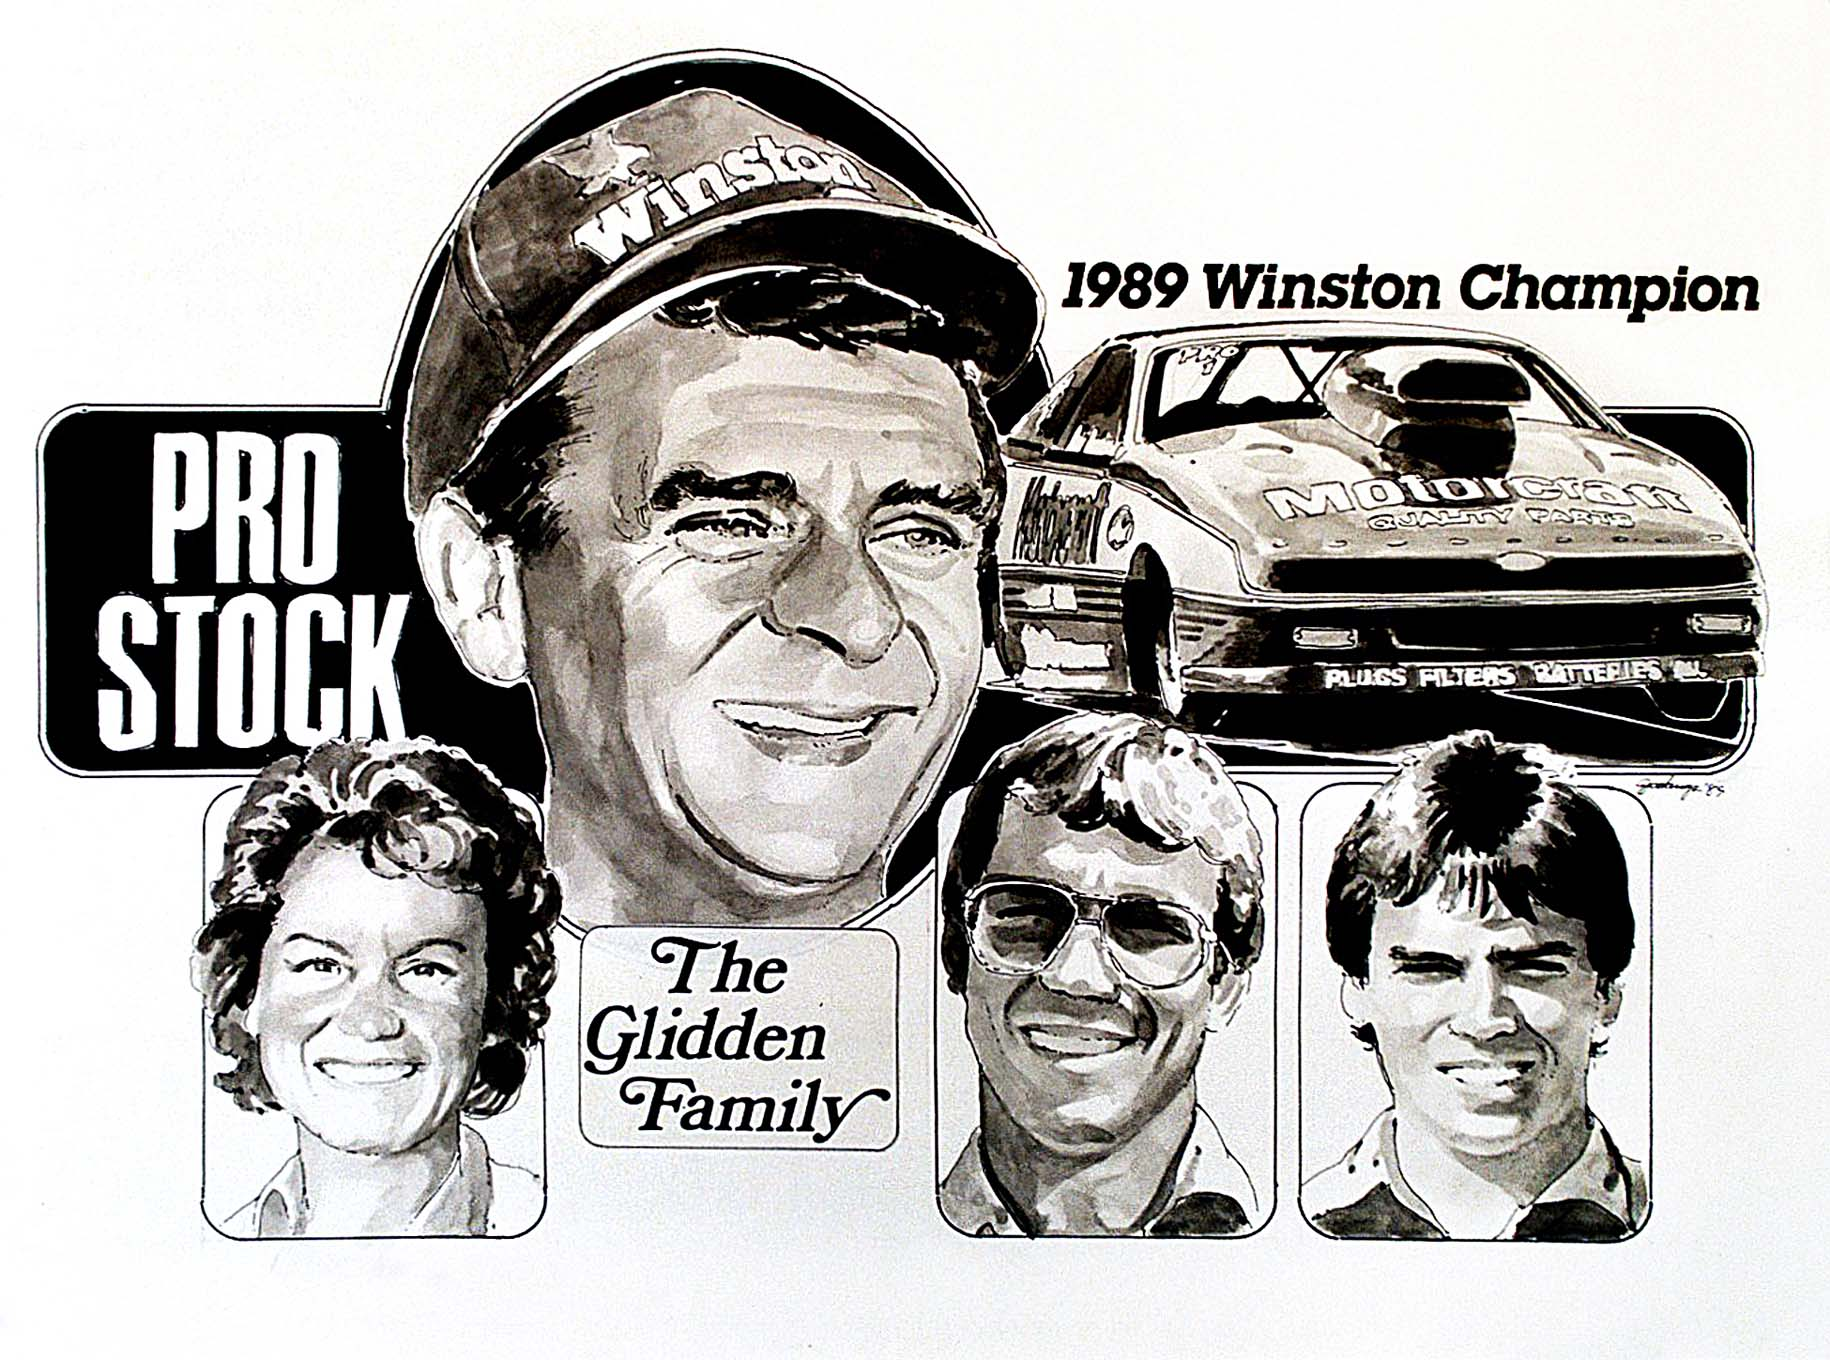 From the 1970s through the 1990s, Jodauga did many drag-racing portraits for National DRAGSTER, ranging from the Personality Profile illustrations that appeared on the cover to artwork to other efforts that commemorated each season's major champions, including this example of Pro Stock titlist Bob Glidden in 1989.